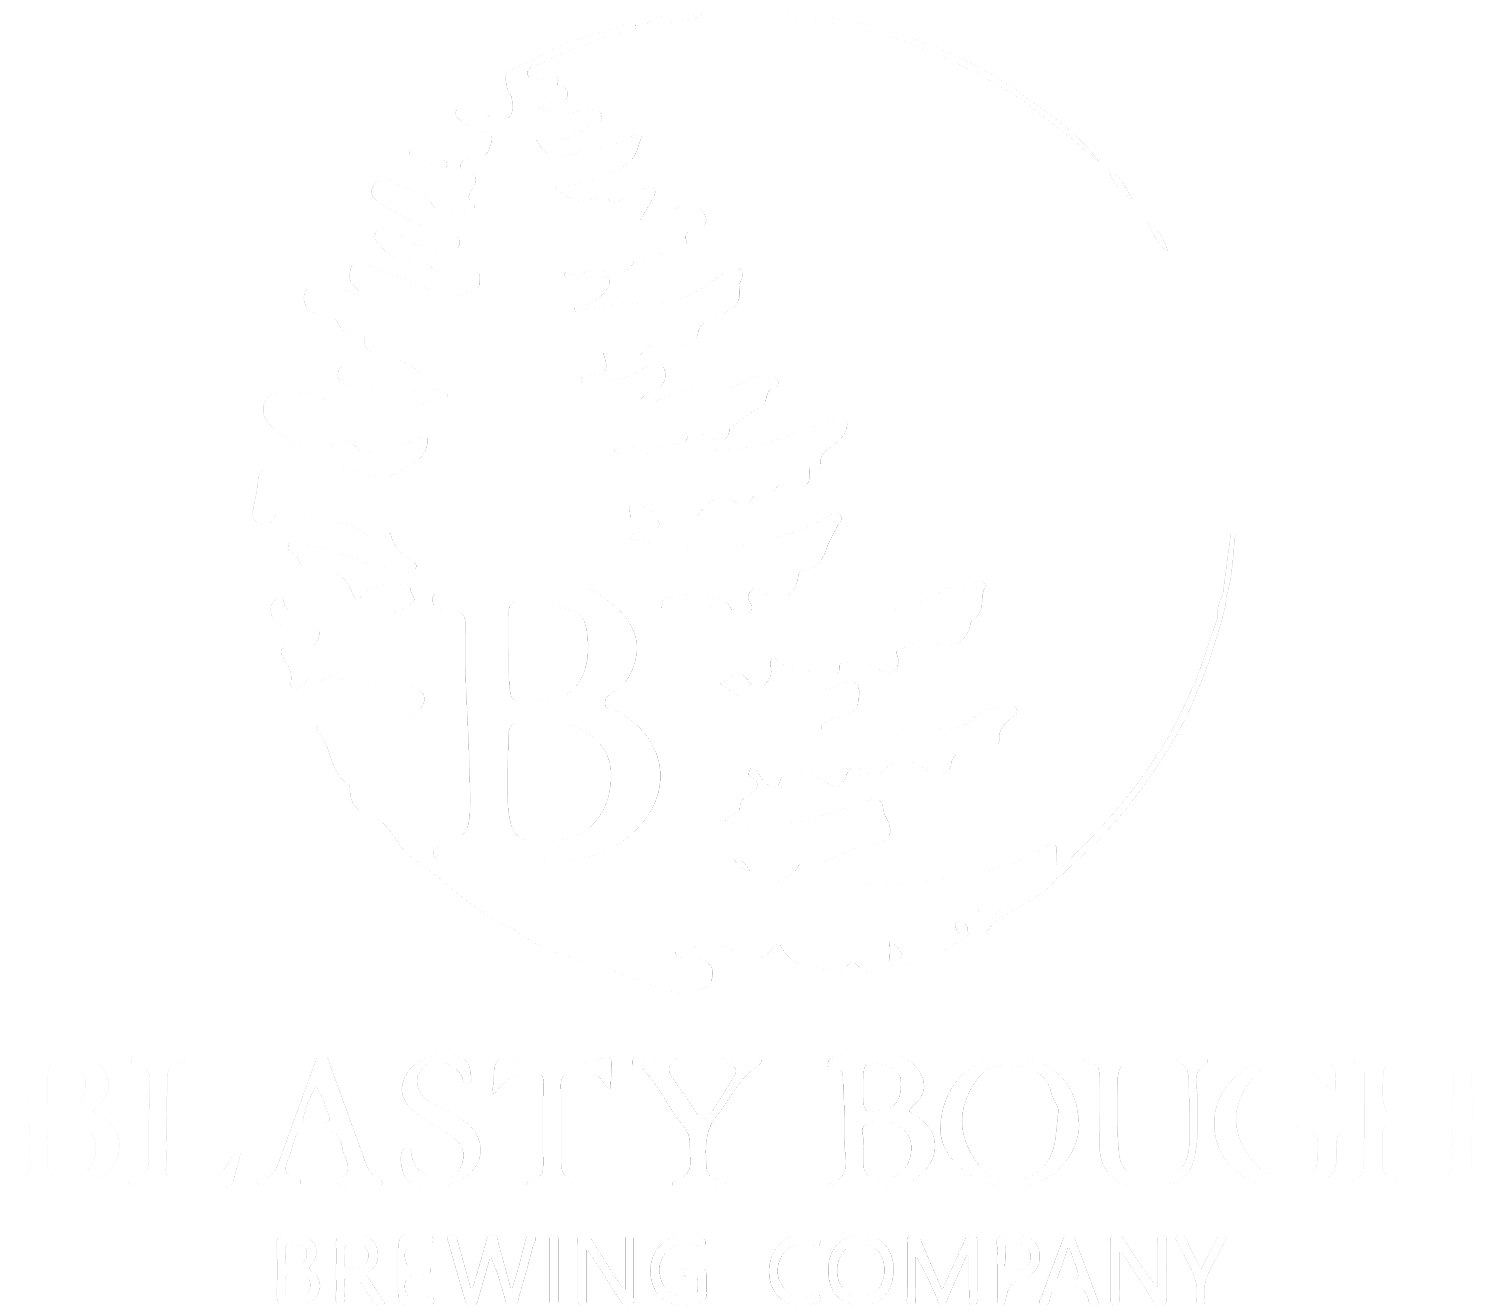 Blasty Bough Brewing Company